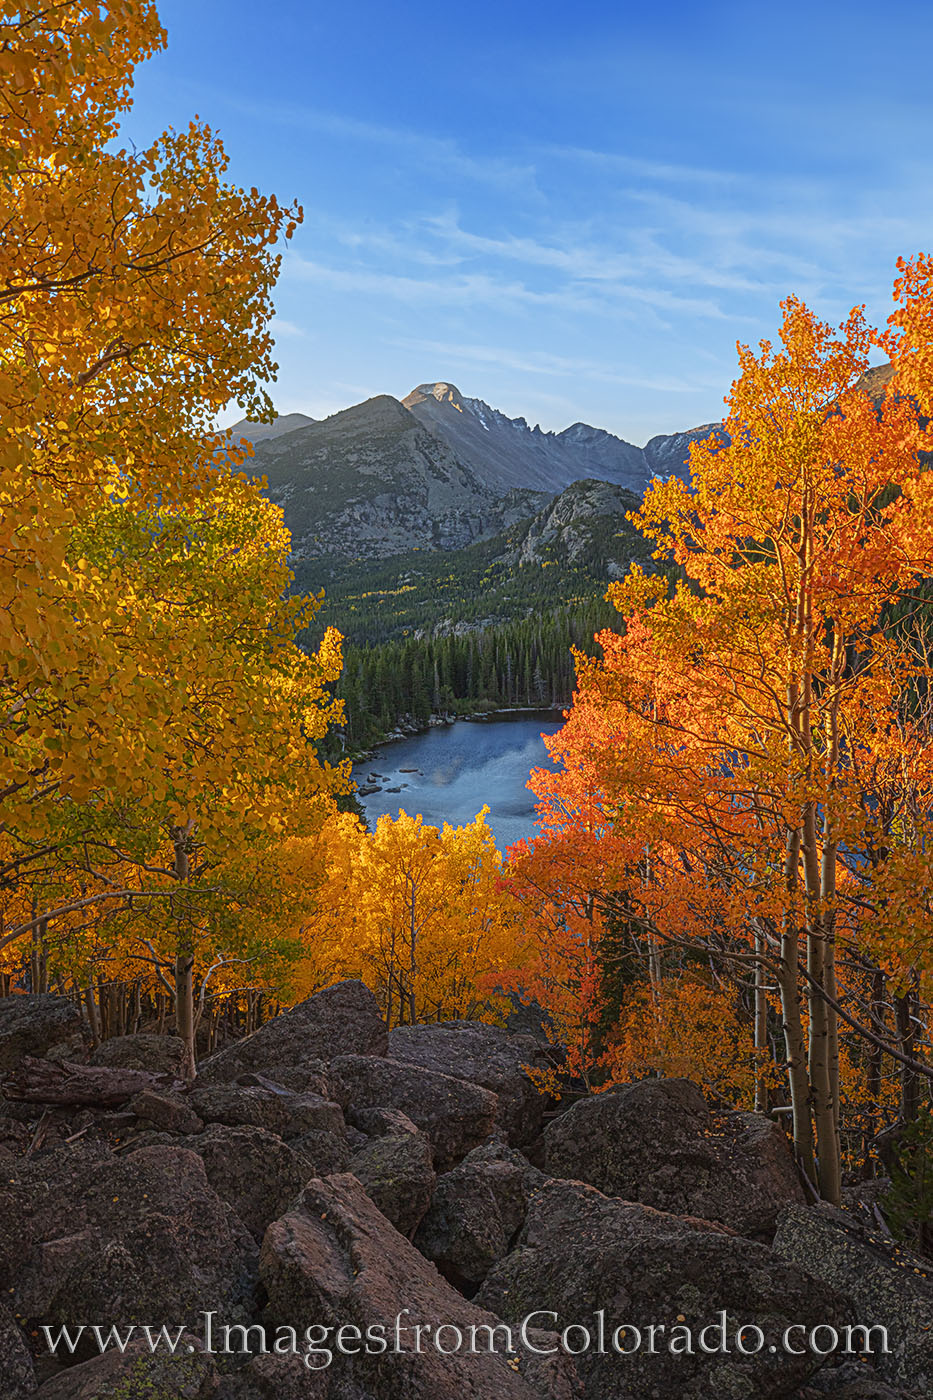 aspen, bear lake, rocky mountain national park, fall colors, autumn, orange, gold, longs peak, photo